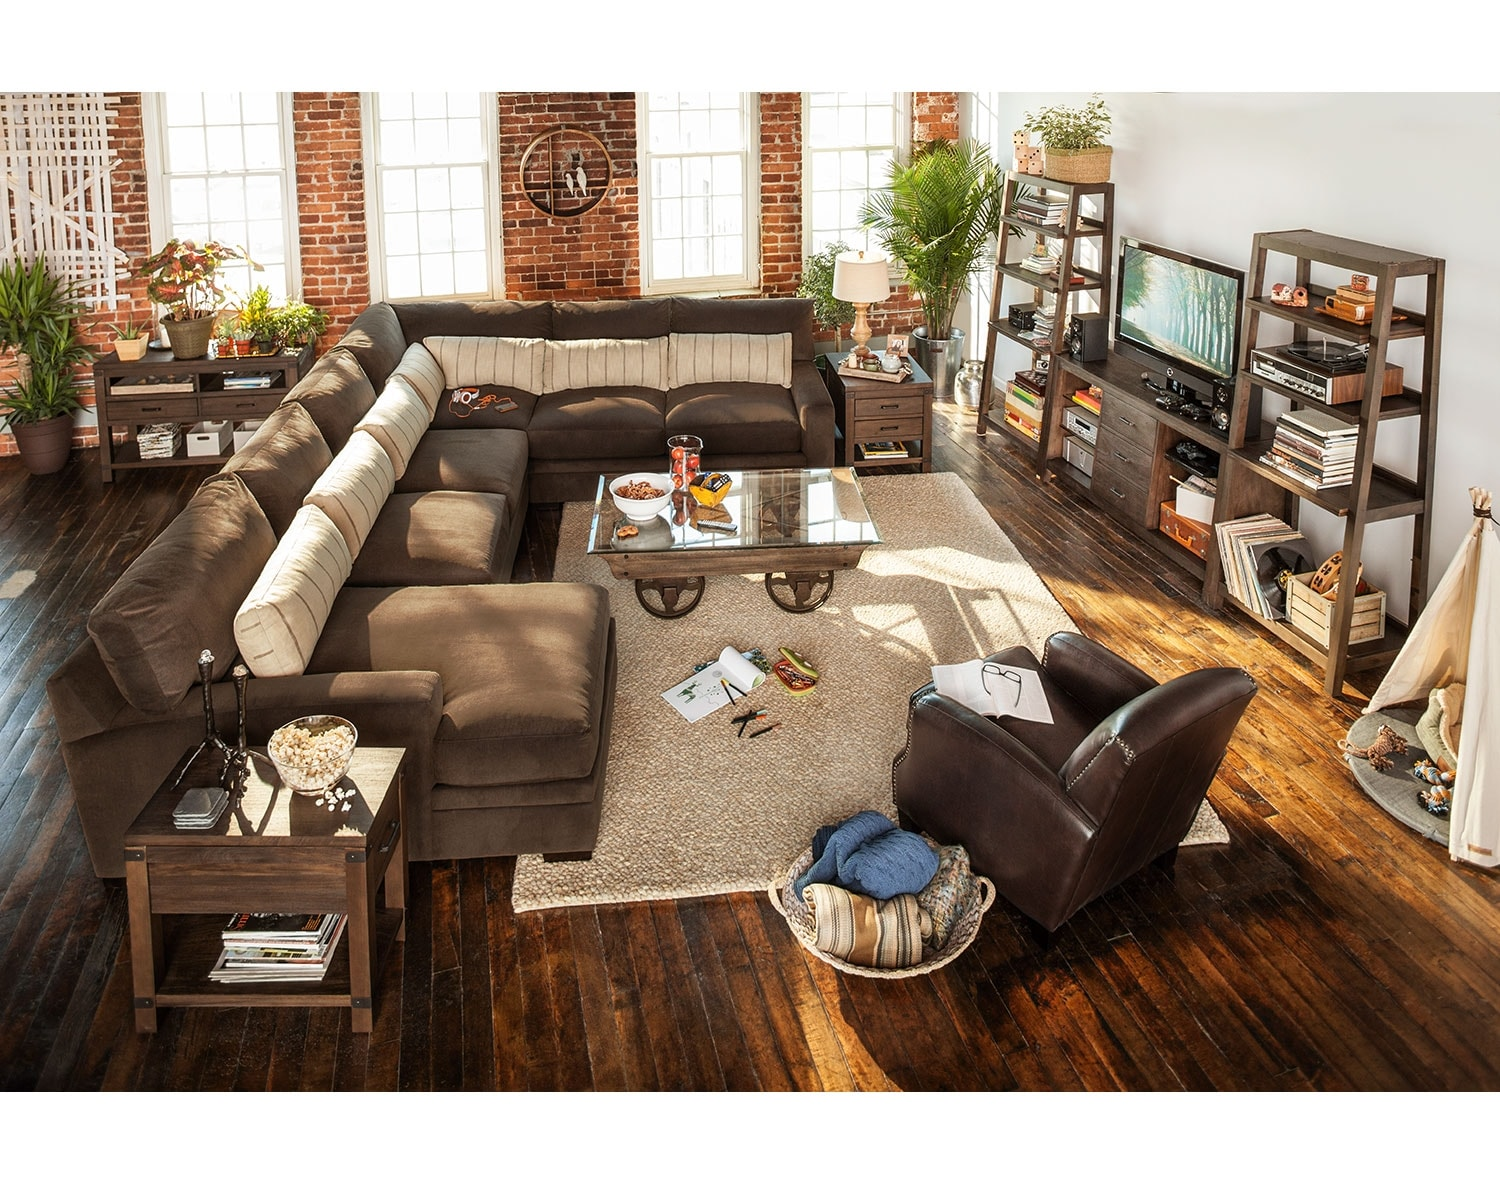 The Ventura Teak Sectional Collection